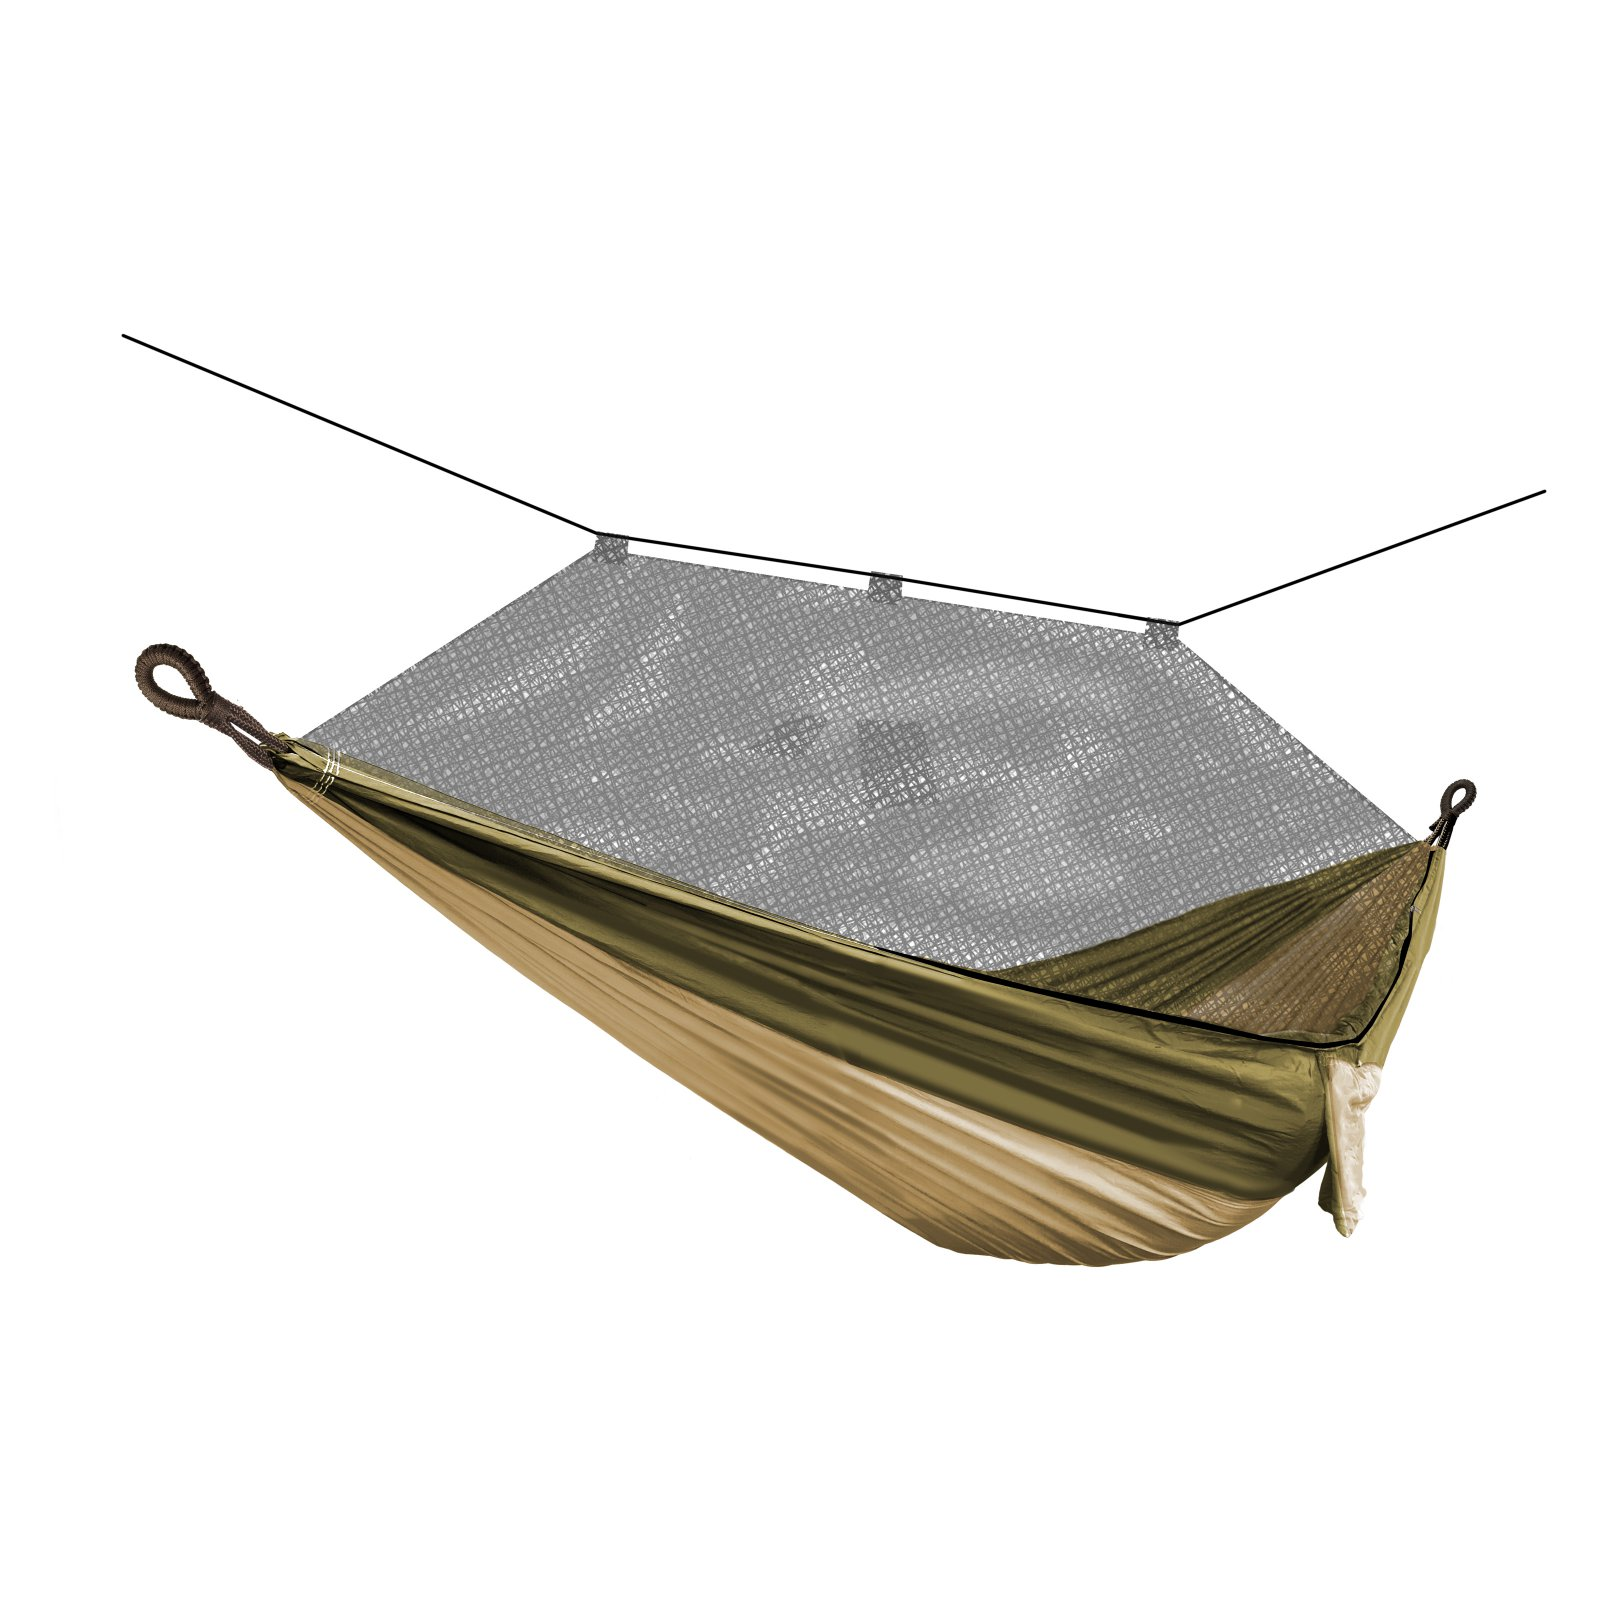 Bliss Hammocks Hammock in a Pocket with Mosquito Net